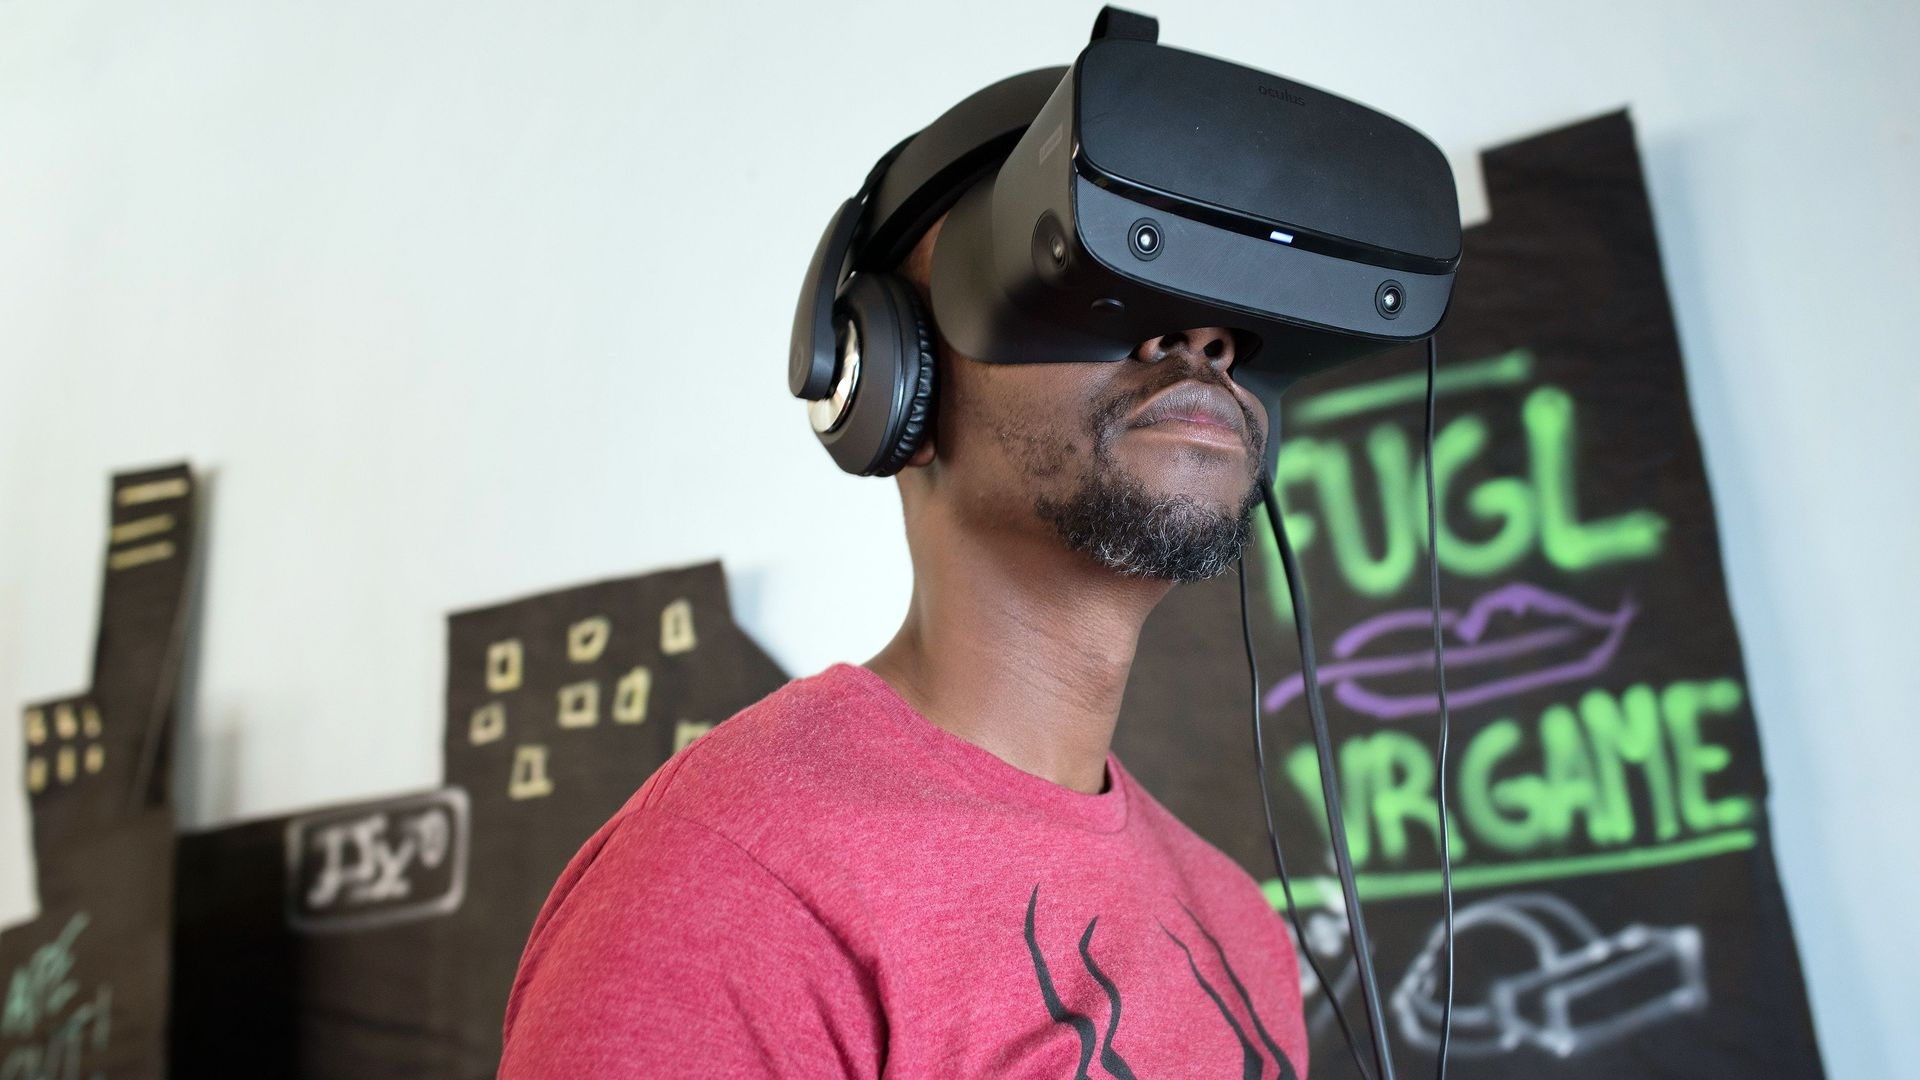 The complicated future of augmented and virtual reality